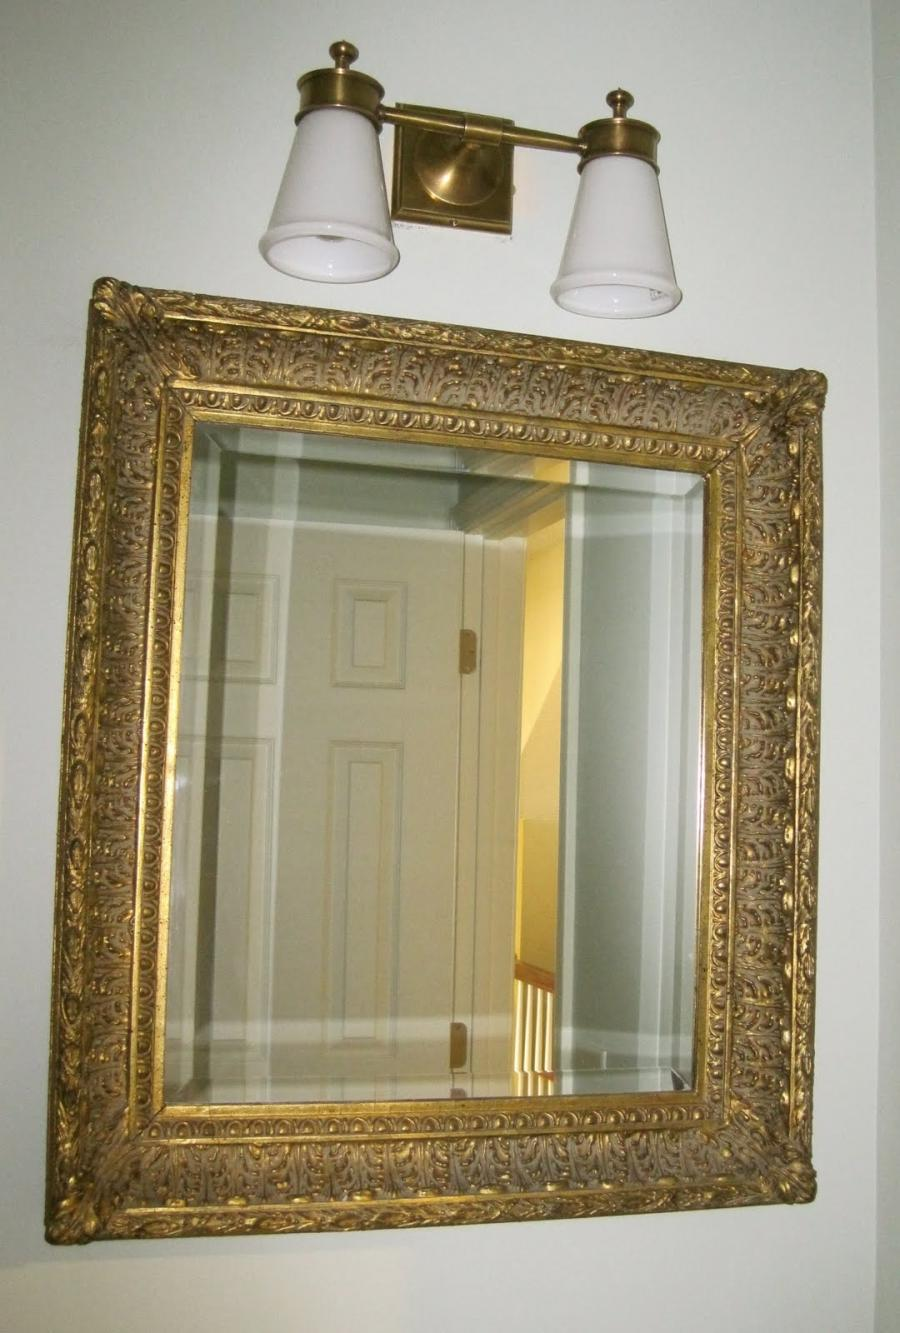 Finally, the builder-grade mirror was replaced by a lovely...